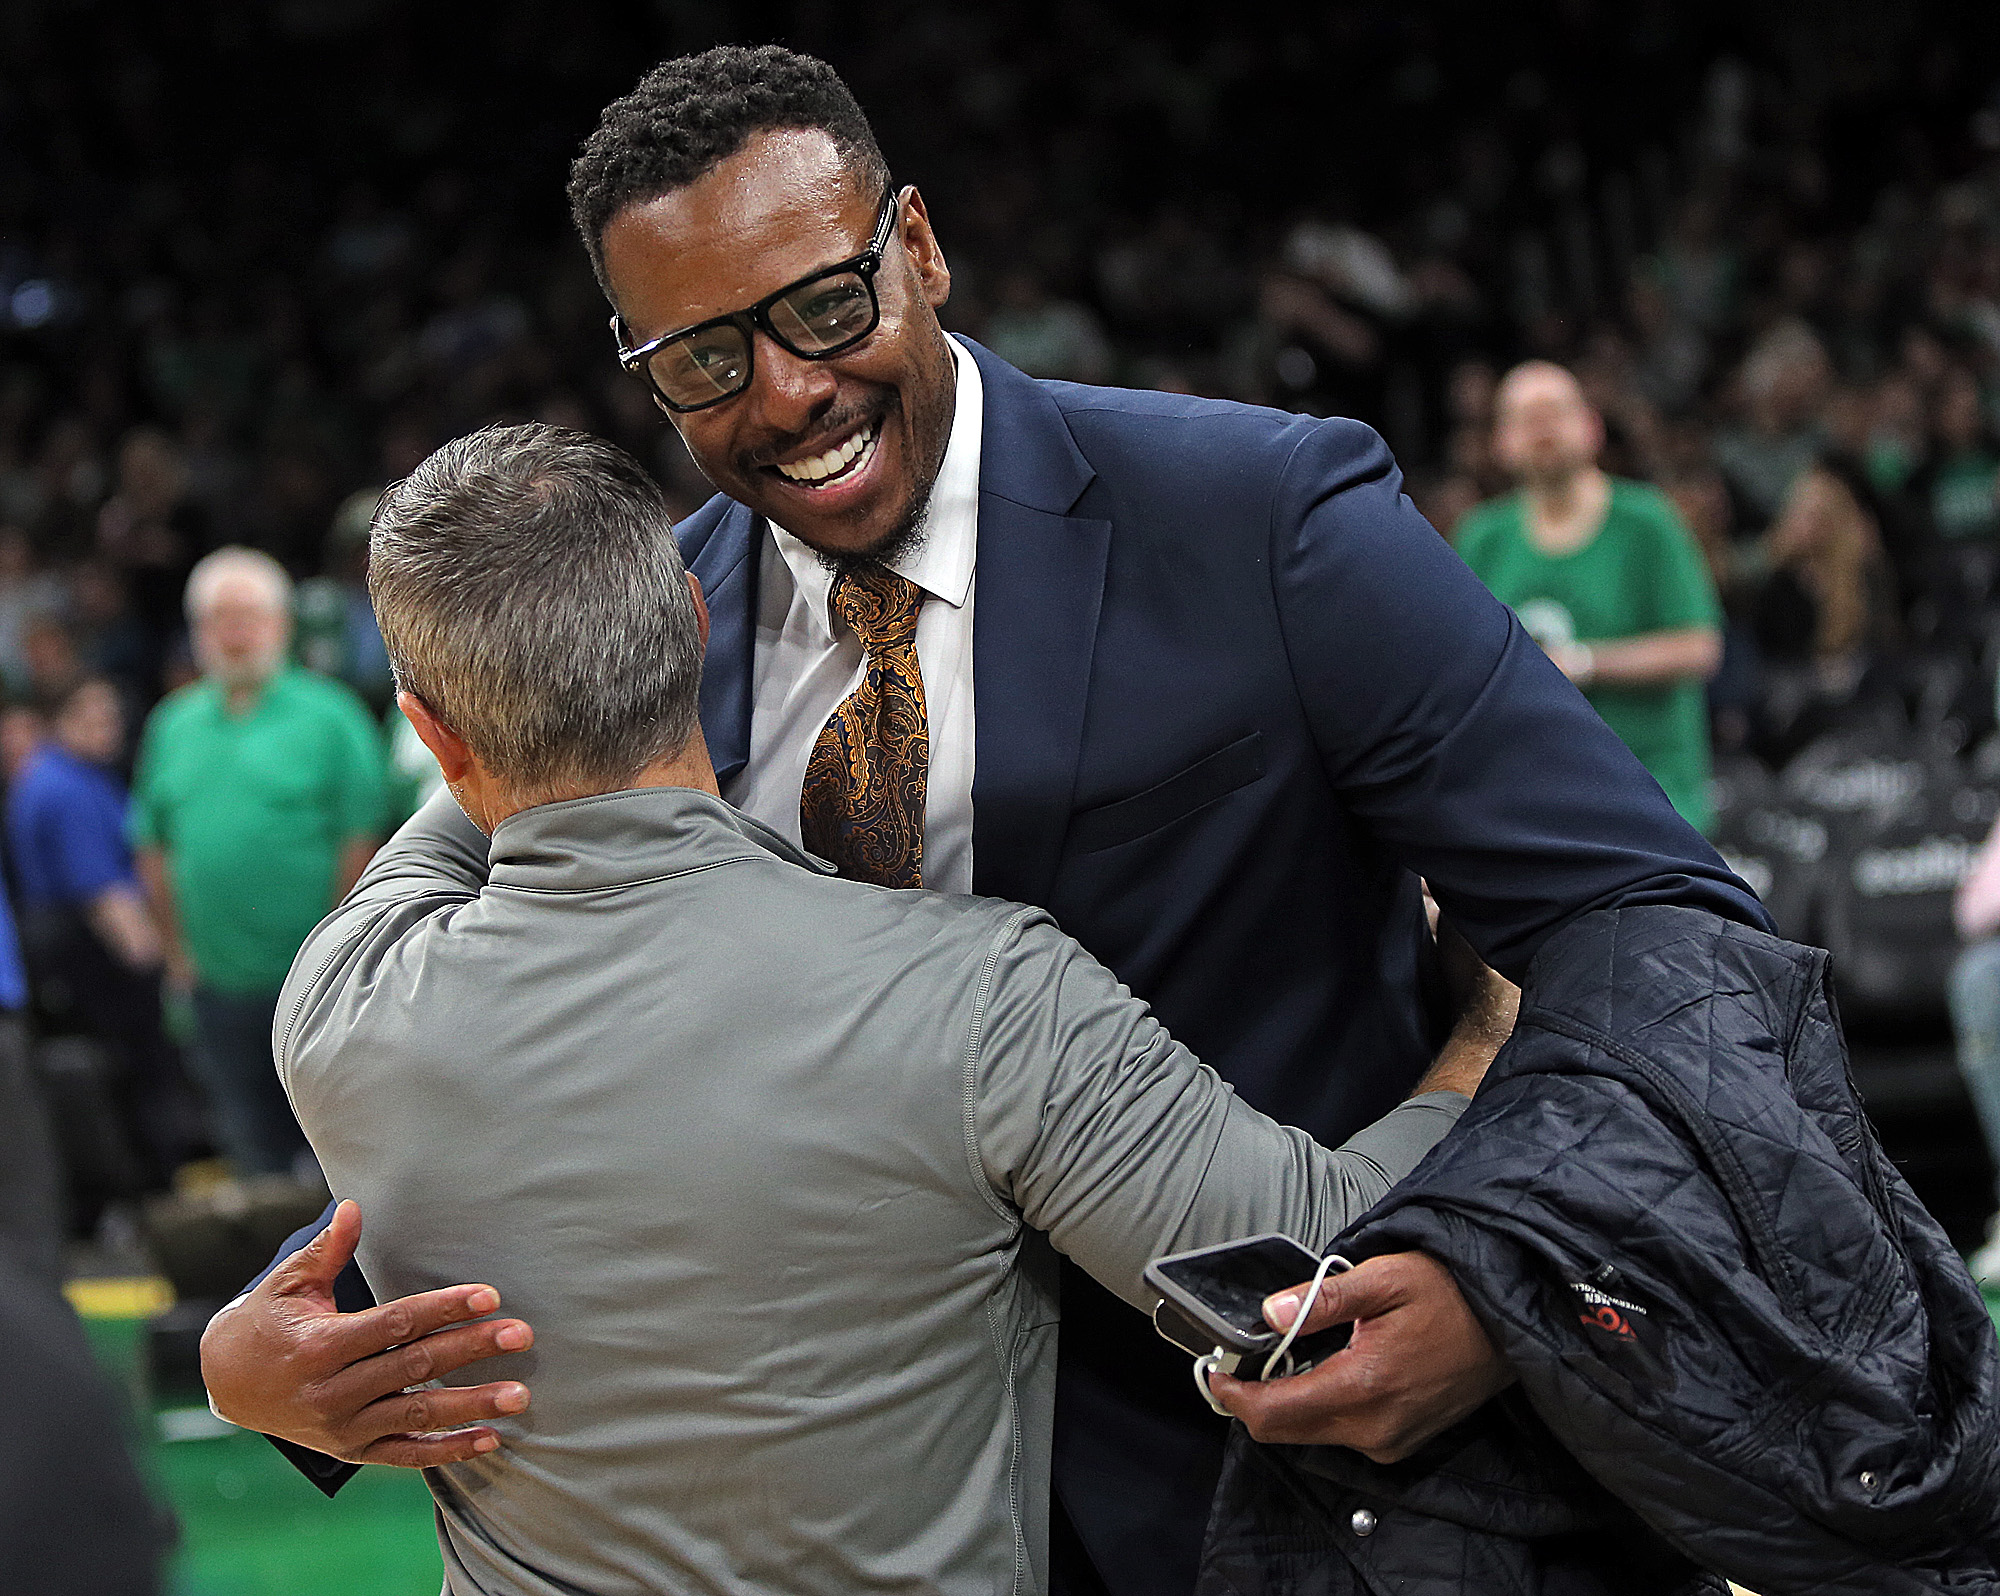 A Paul Pierce Apology Now for Bizarre Video with Strippers Wouldn't Be Authentic